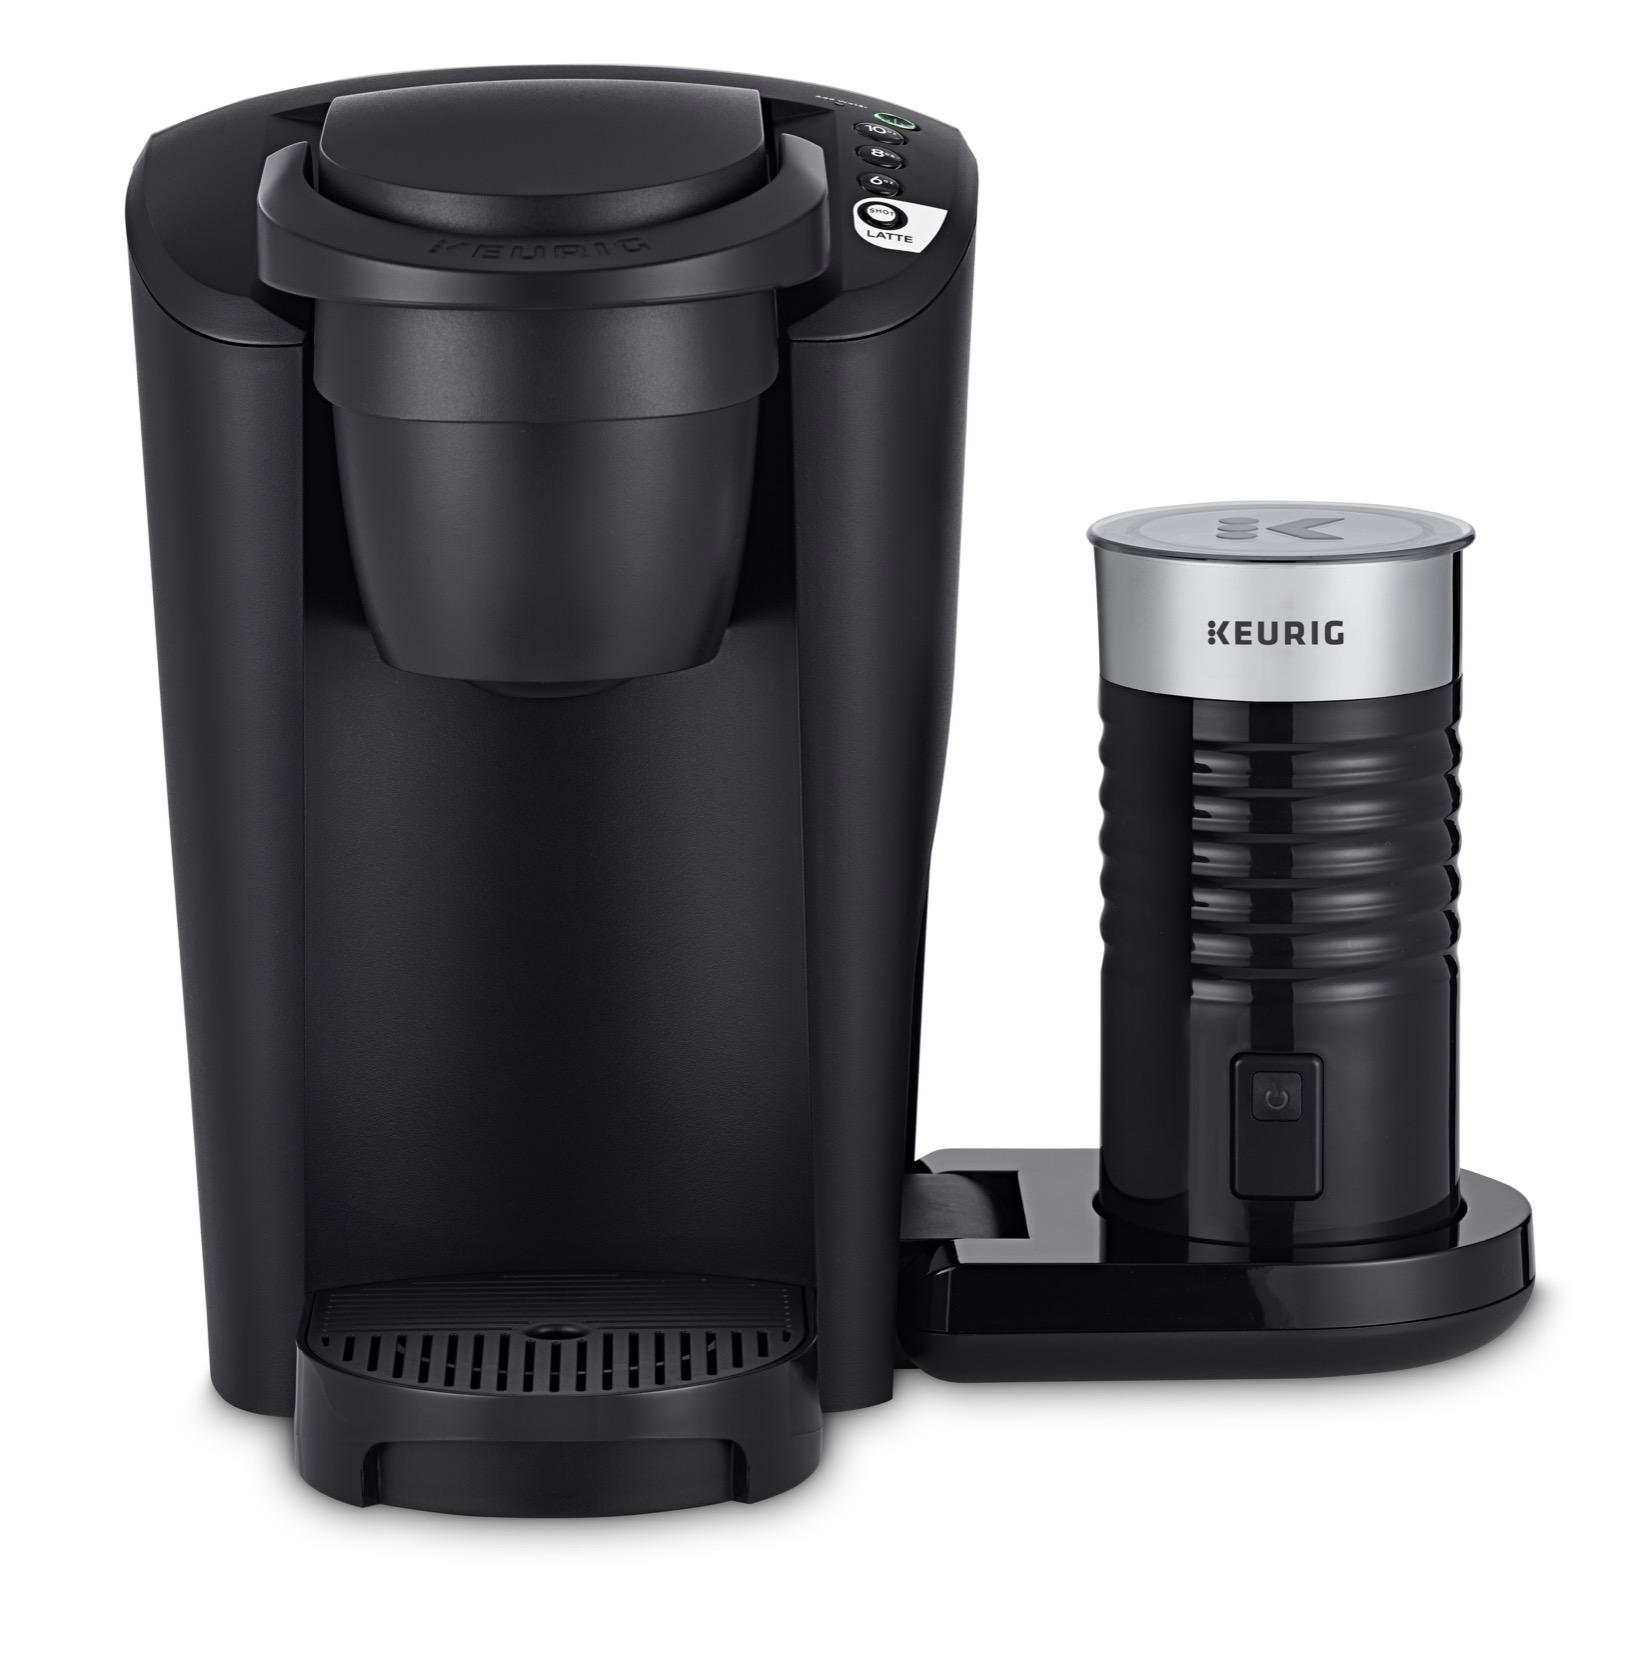 Keurig's K-Cafe Promises Espresso-strong Coffee From